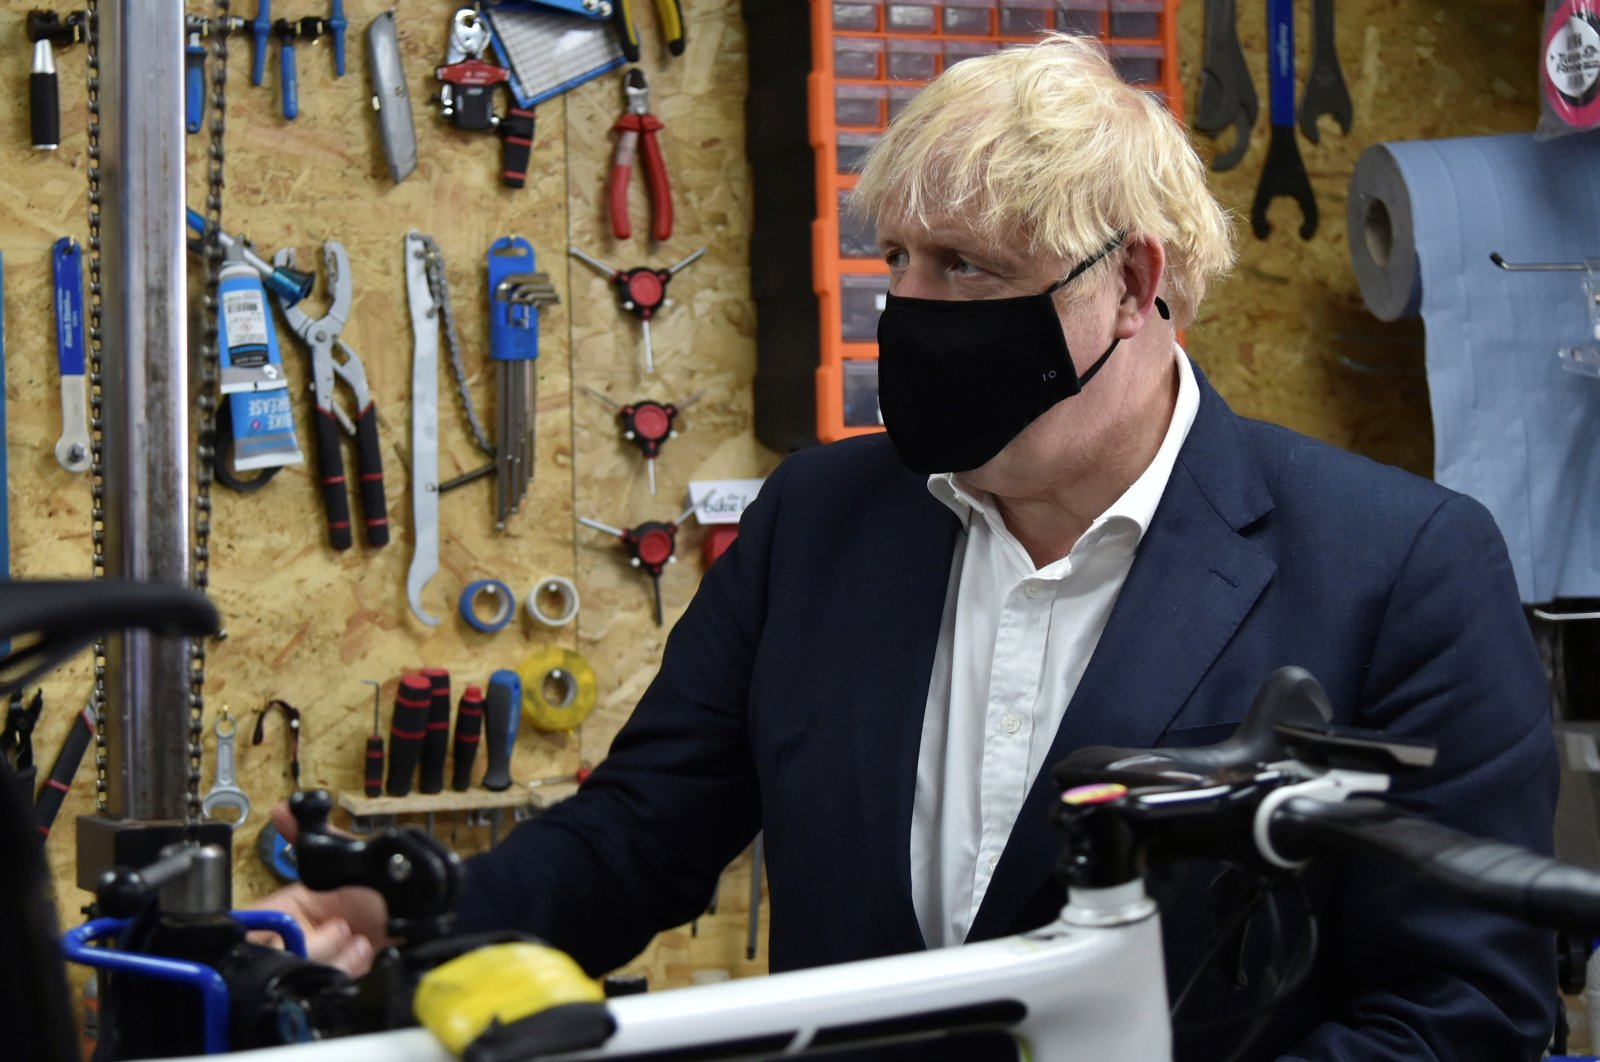 Britain's Prime Minister Boris Johnson talks to the owner of the the Cycle Lounge, Rodney Rouse, a bicycle repair shop, after the government announced a new plan to get Britain cycling, amid the outbreak of the coronavirus, in Beeston near Nottingham, Britain, July 28, 2020. (Reuters Photo)